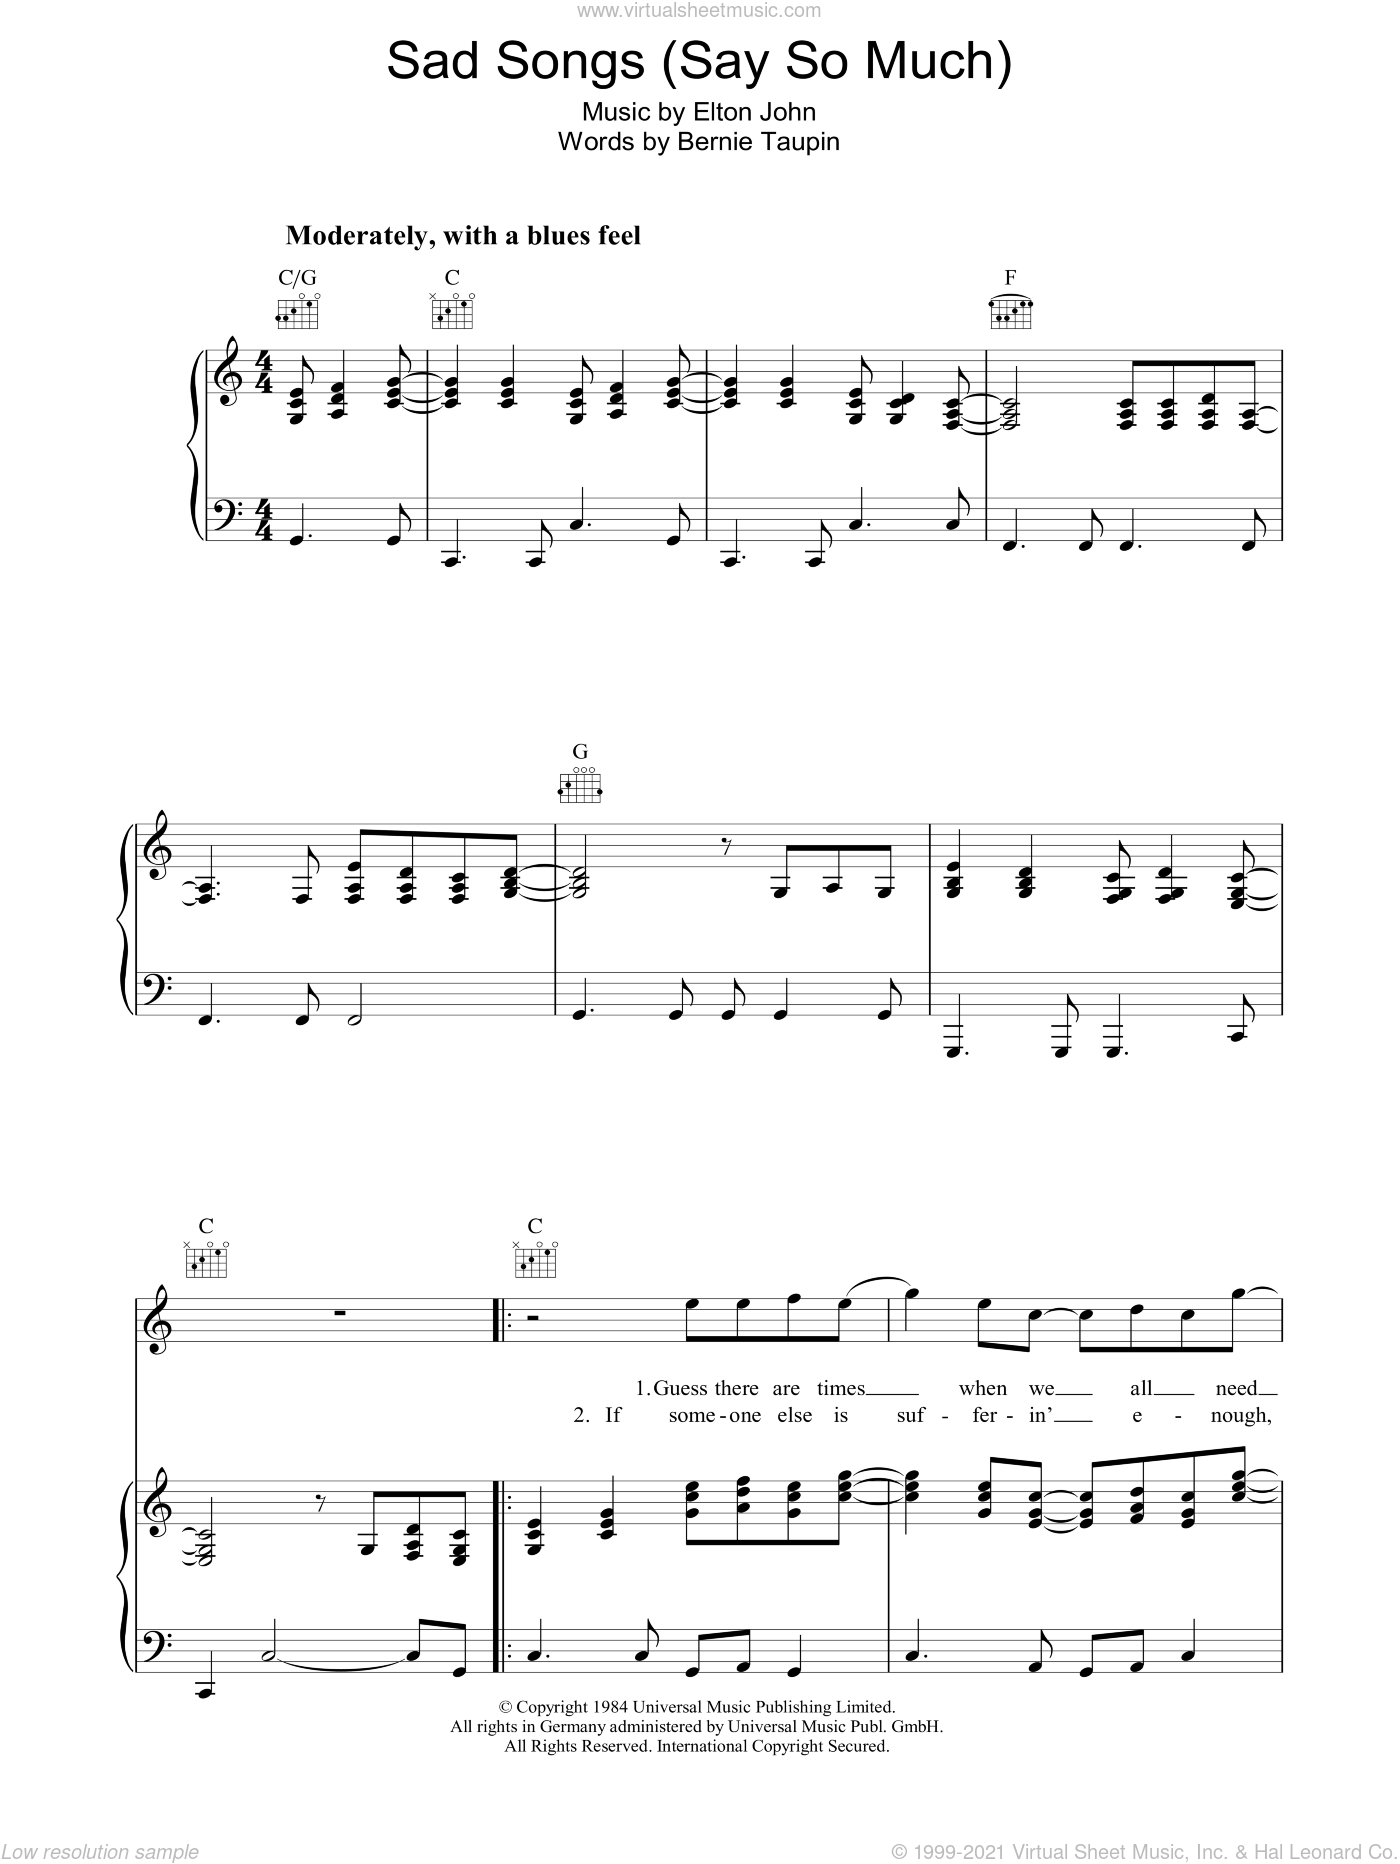 Sad Songs (Say So Much) sheet music for voice, piano or guitar by Elton John and Bernie Taupin, intermediate voice, piano or guitar. Score Image Preview.